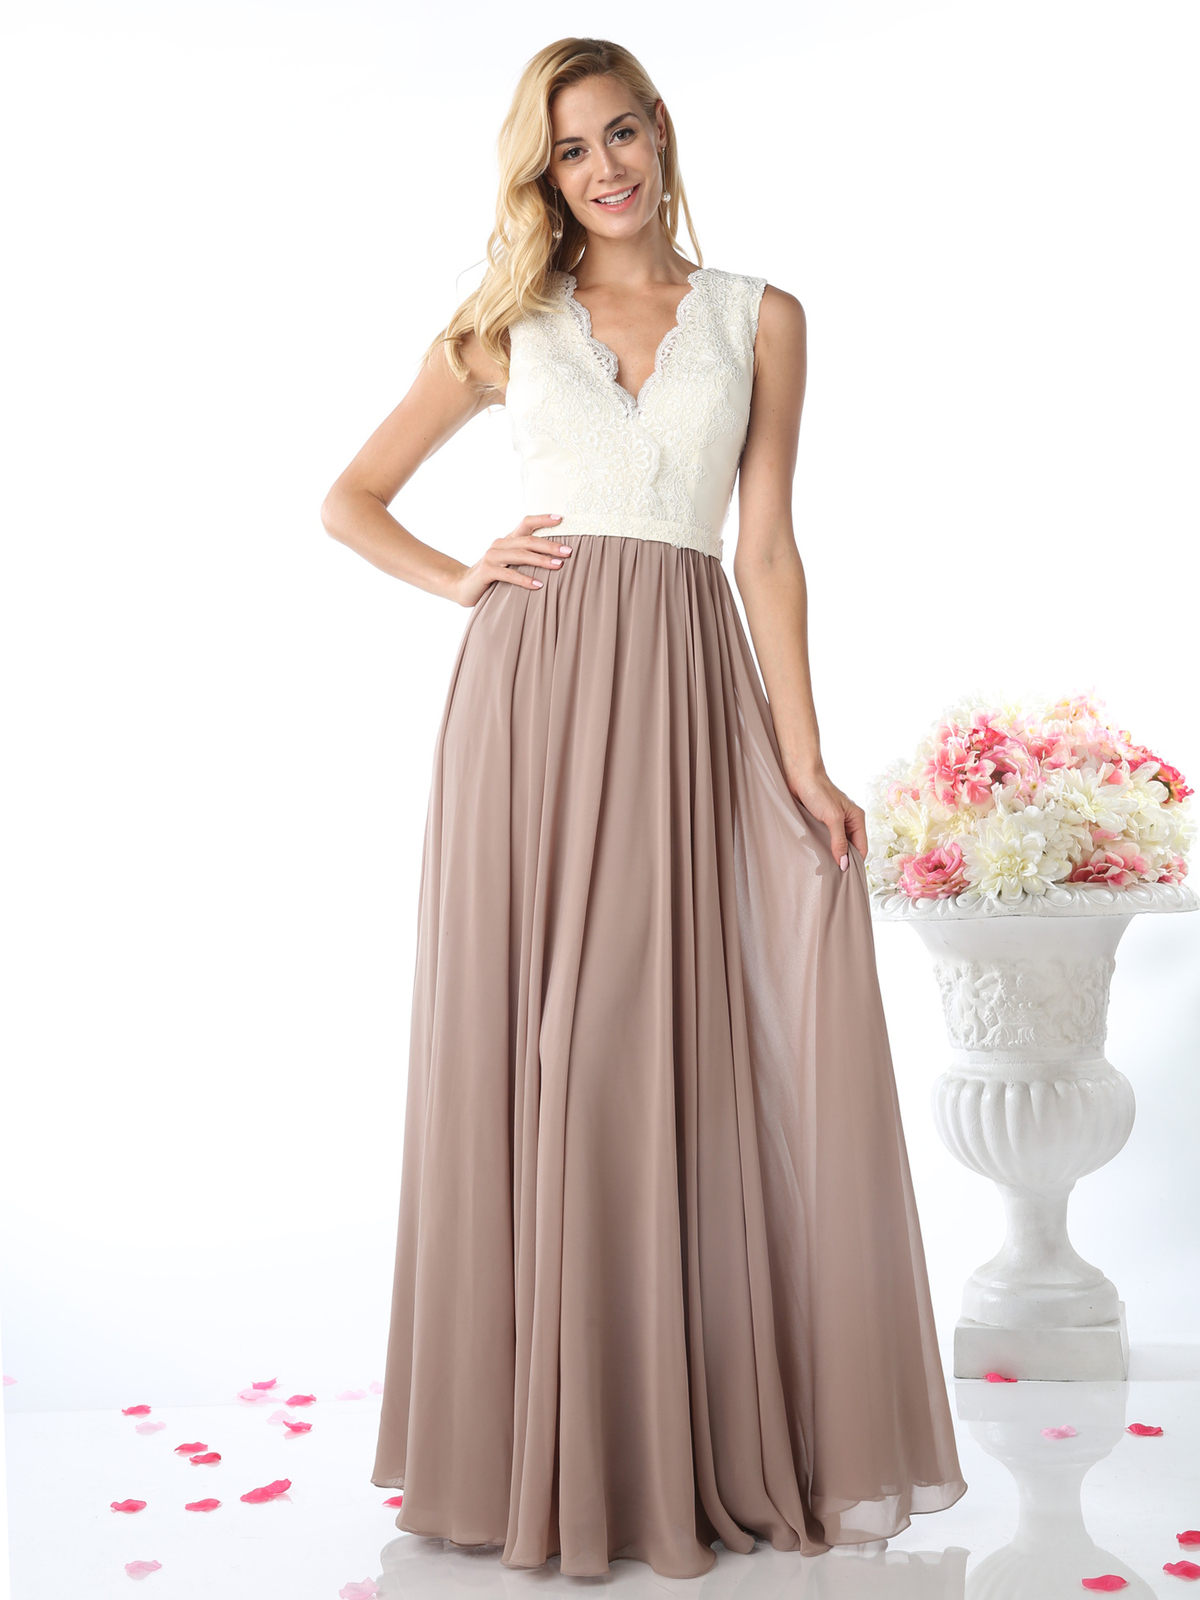 Sleeveless V-Neck Bridesmaid Dress | Sung Boutique L.A.